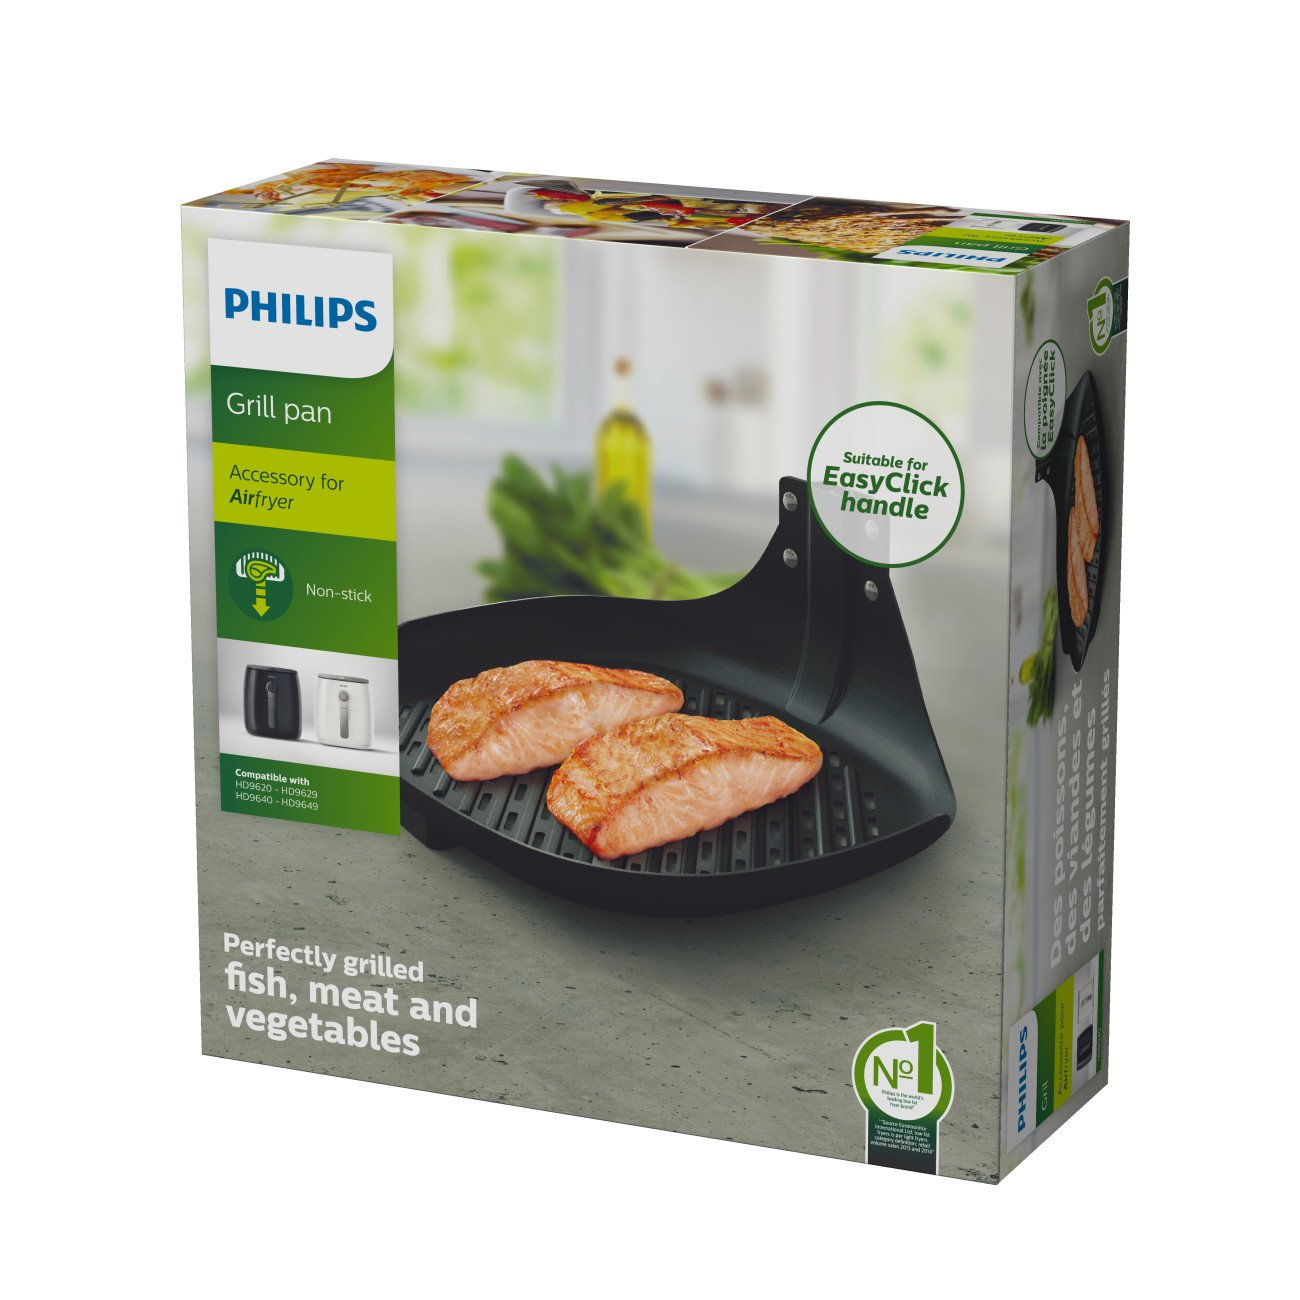 Philips HD9940/00  Airfryer Non-Stick Grill Pan Accessory for TurboStar model Airfryers by Philips (Image #5)